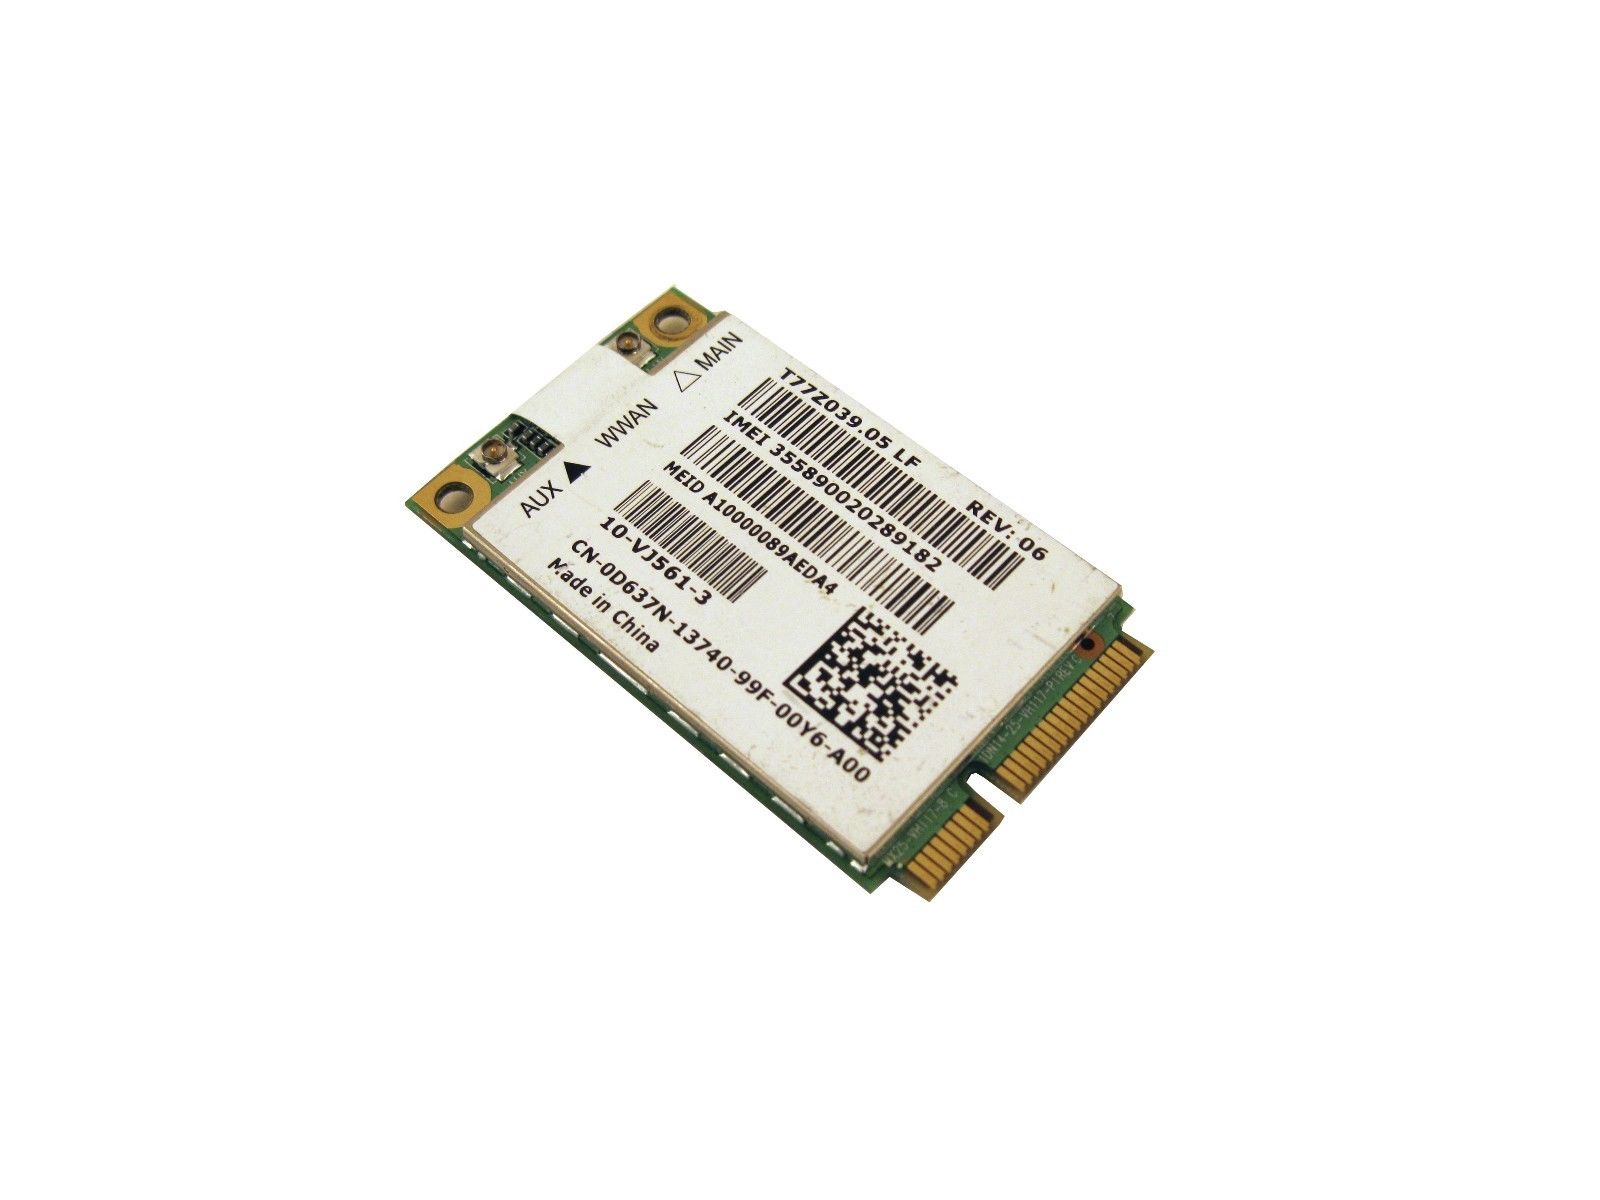 Dell D637N Mini PCI Express WWAN Cell Mobile 5600 Wireless Card